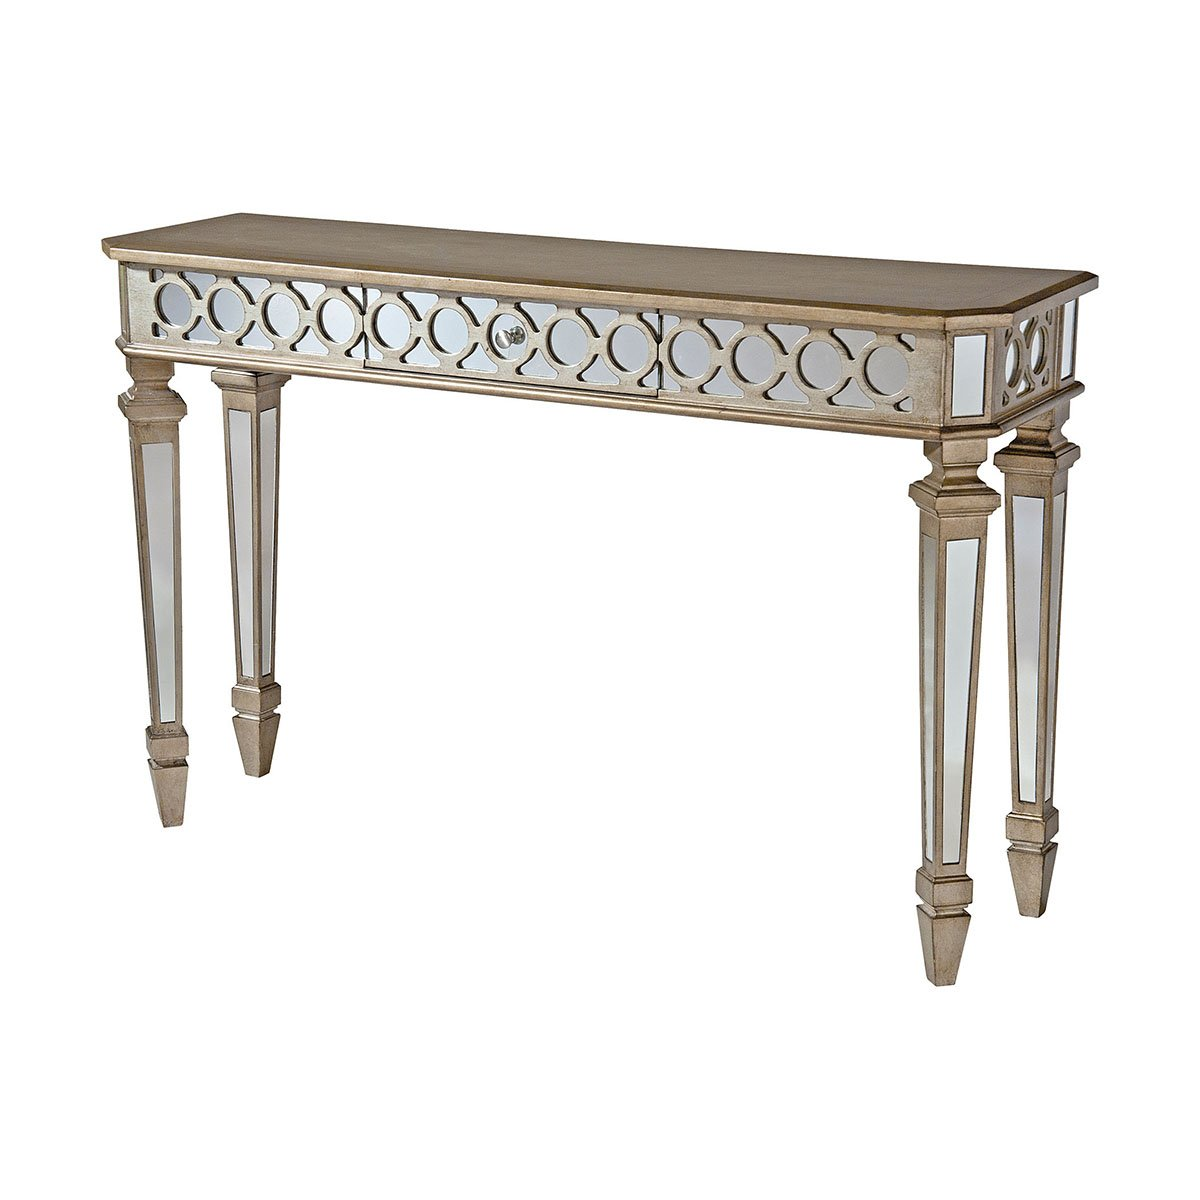 One Drawer Mirrored Console Table Hand Painted Metallic Gold And Silver Finish Mirrored Drawer And Side P In 2020 Mirrored Console Table Mirror Console Console Table